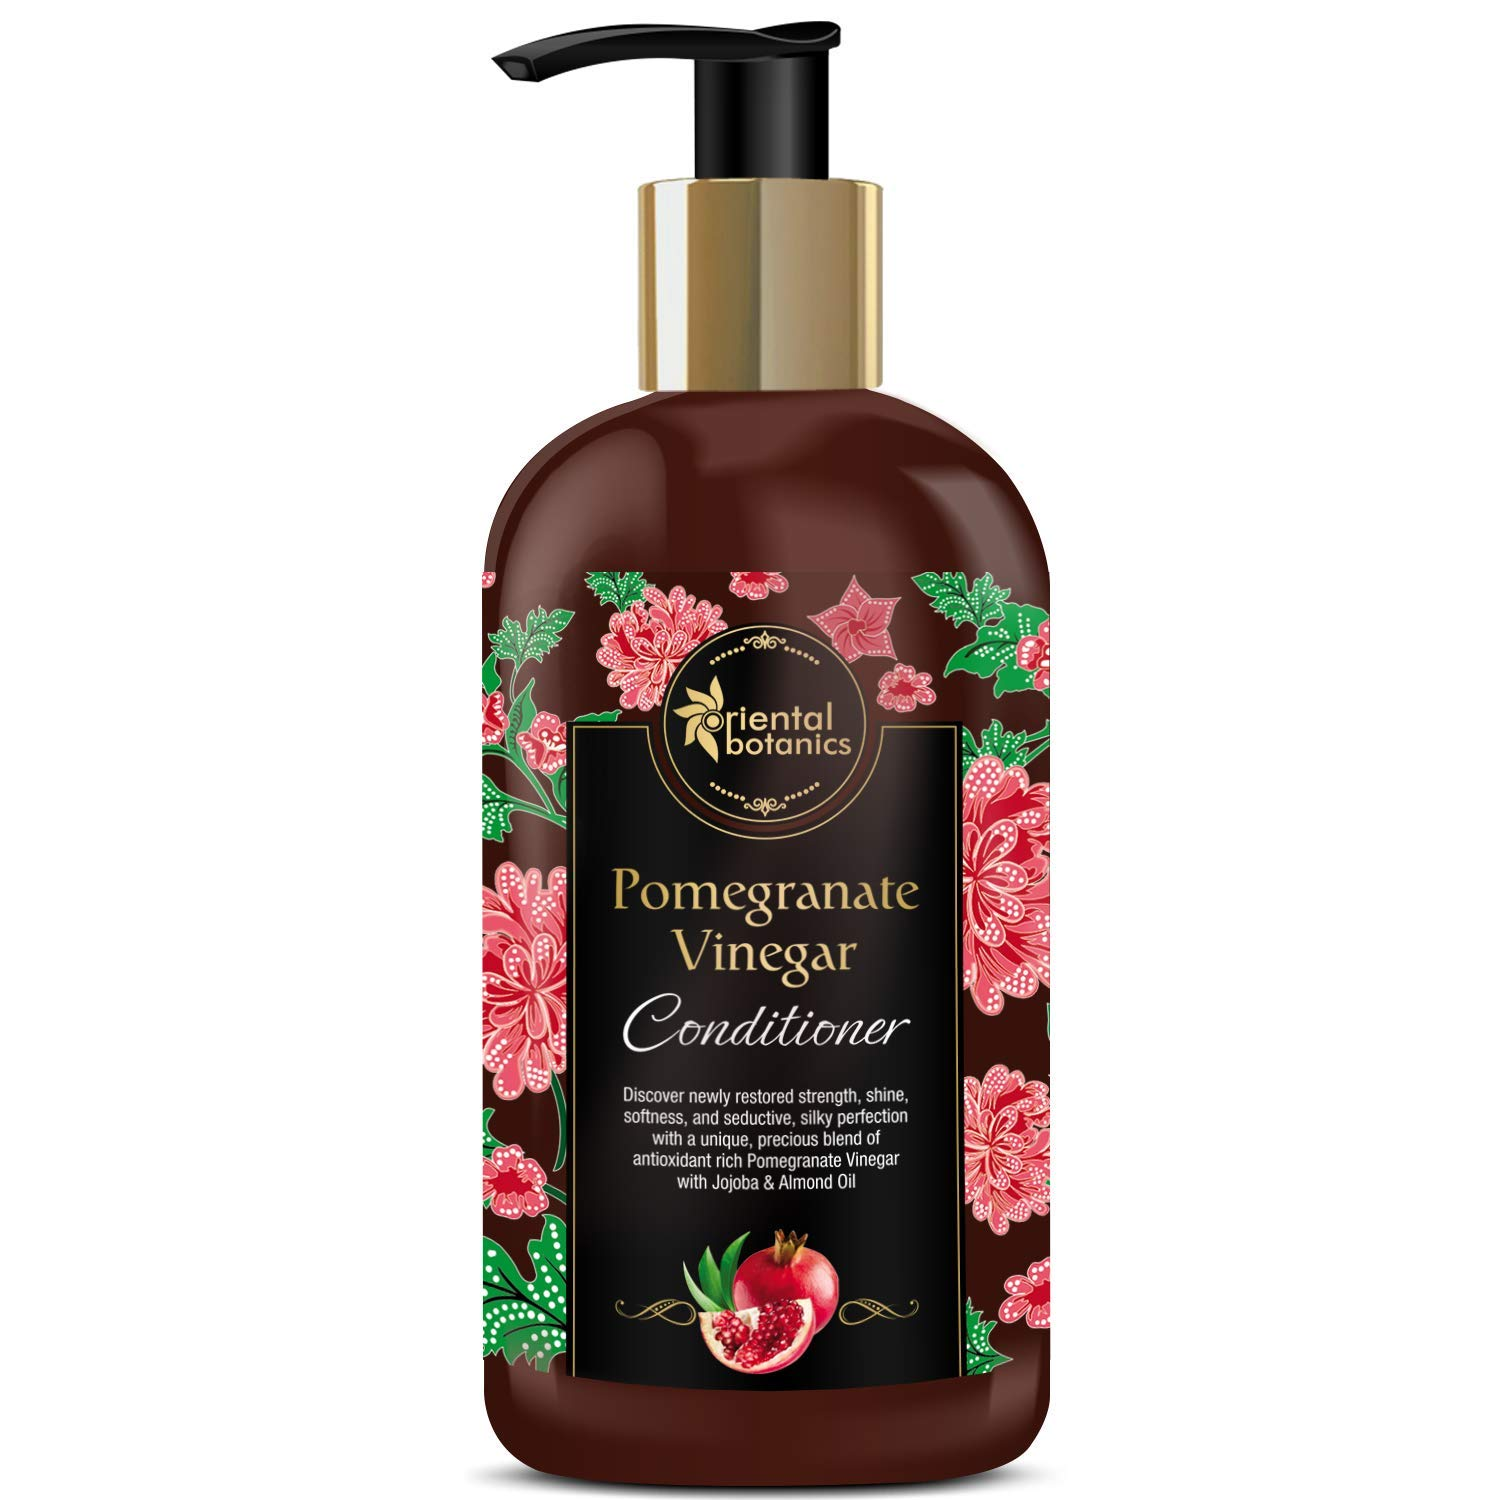 Oriental Botanics Pomegranate Vinegar Conditioner, 300ml -